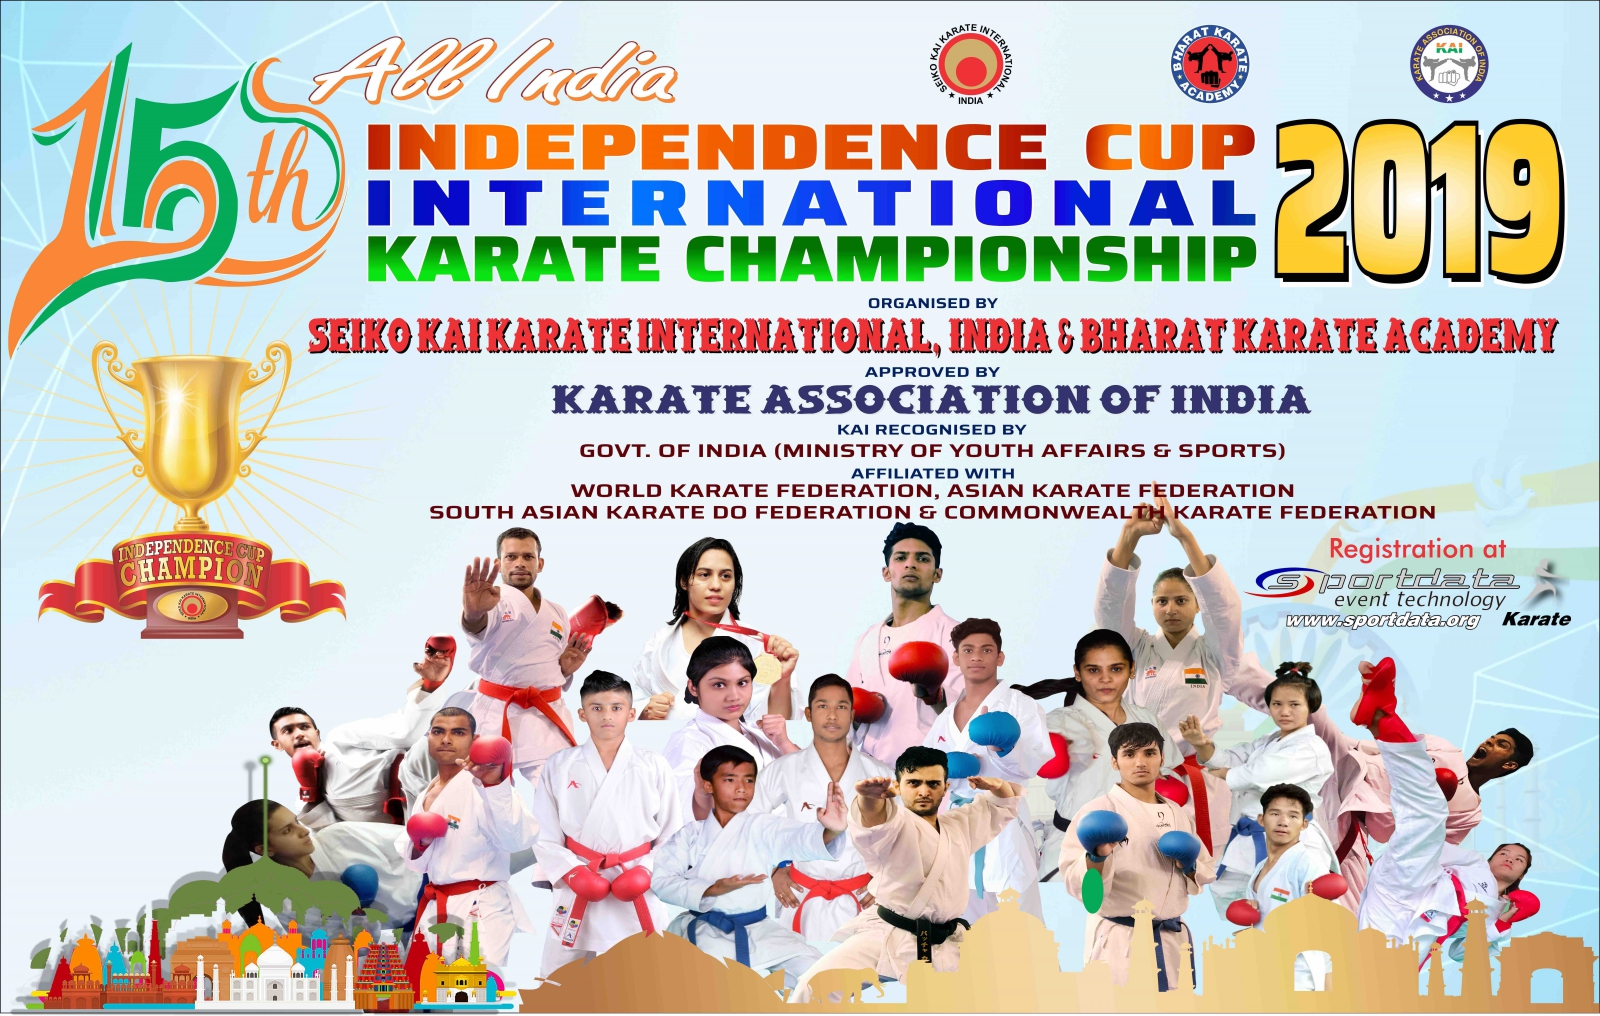 SET Online Karate: All India Independence Cup International Karate